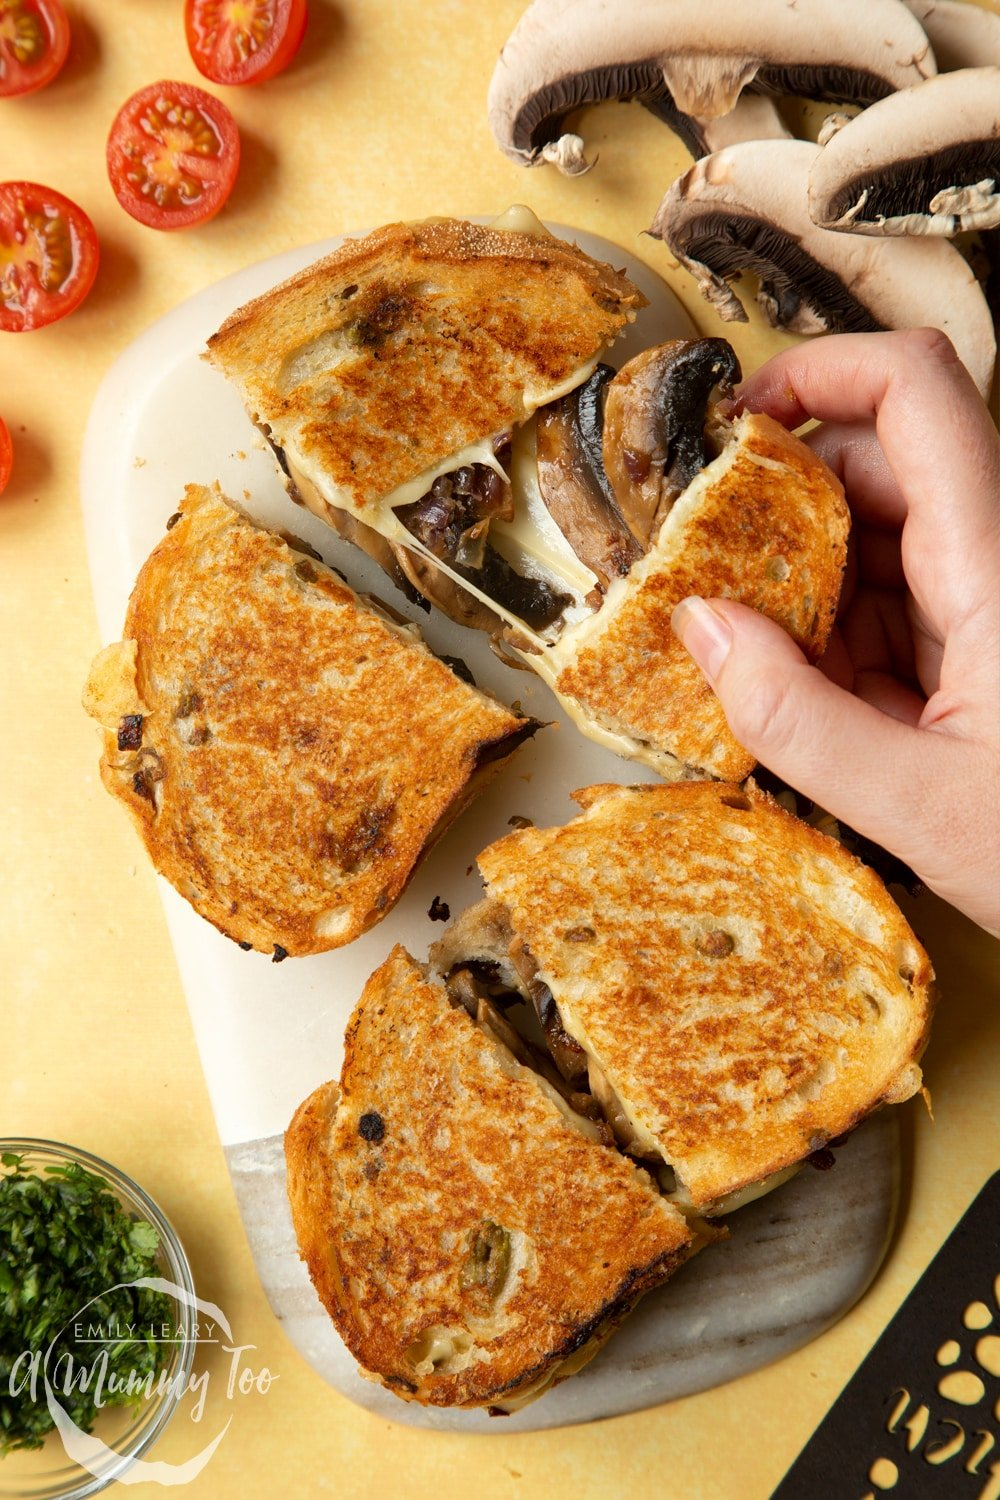 Two Jarlsberg cheese and mushroom toasties are on a serving board, one is being pulled apart so the cheese and mushrooms stretch out between them.